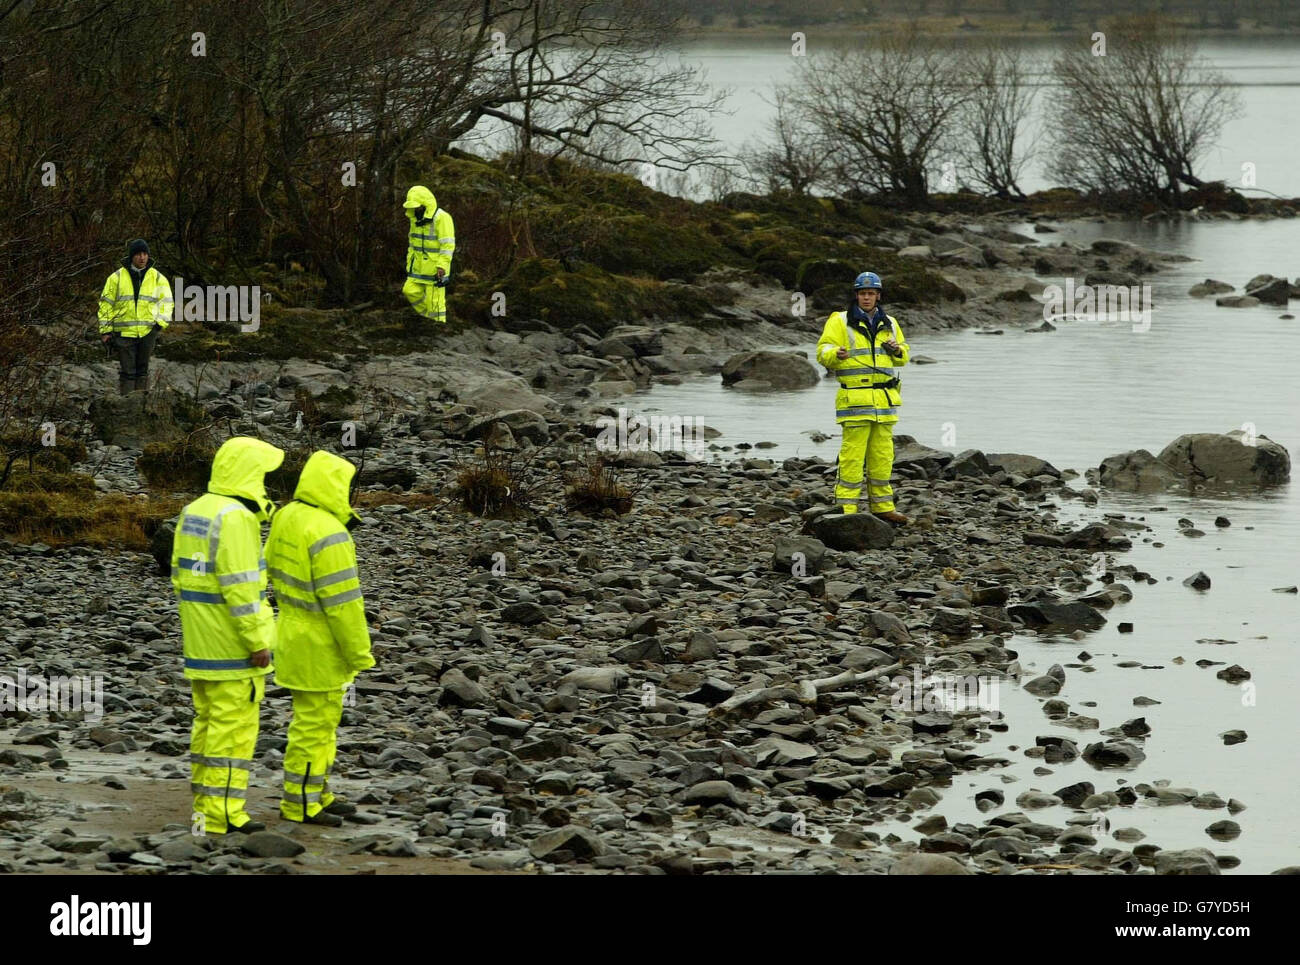 Missing Persons Police Search - Loch Lomond Stock Photo